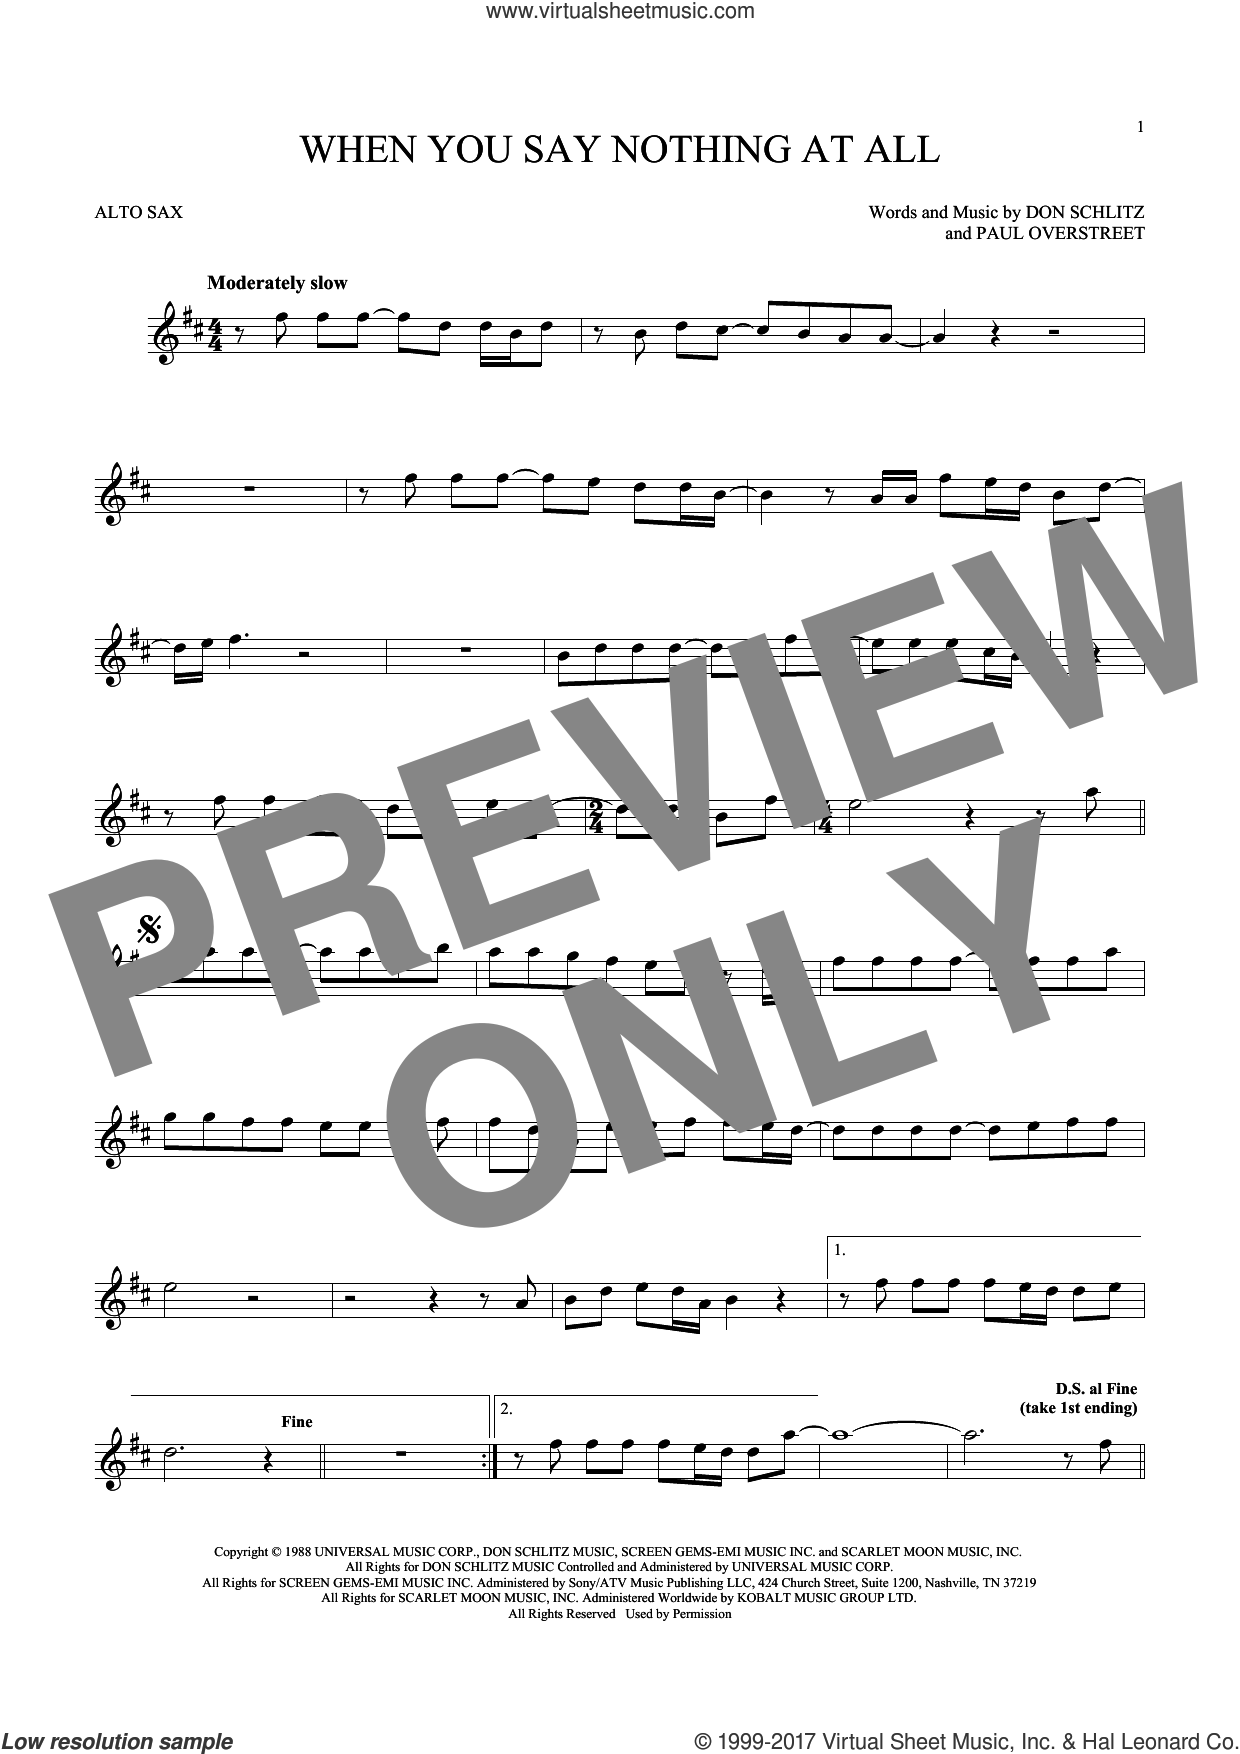 When You Say Nothing At All sheet music for alto saxophone solo ( Sax) by Alison Krauss & Union Station, Keith Whitley, Don Schlitz and Paul Overstreet, wedding score, intermediate alto saxophone ( Sax)